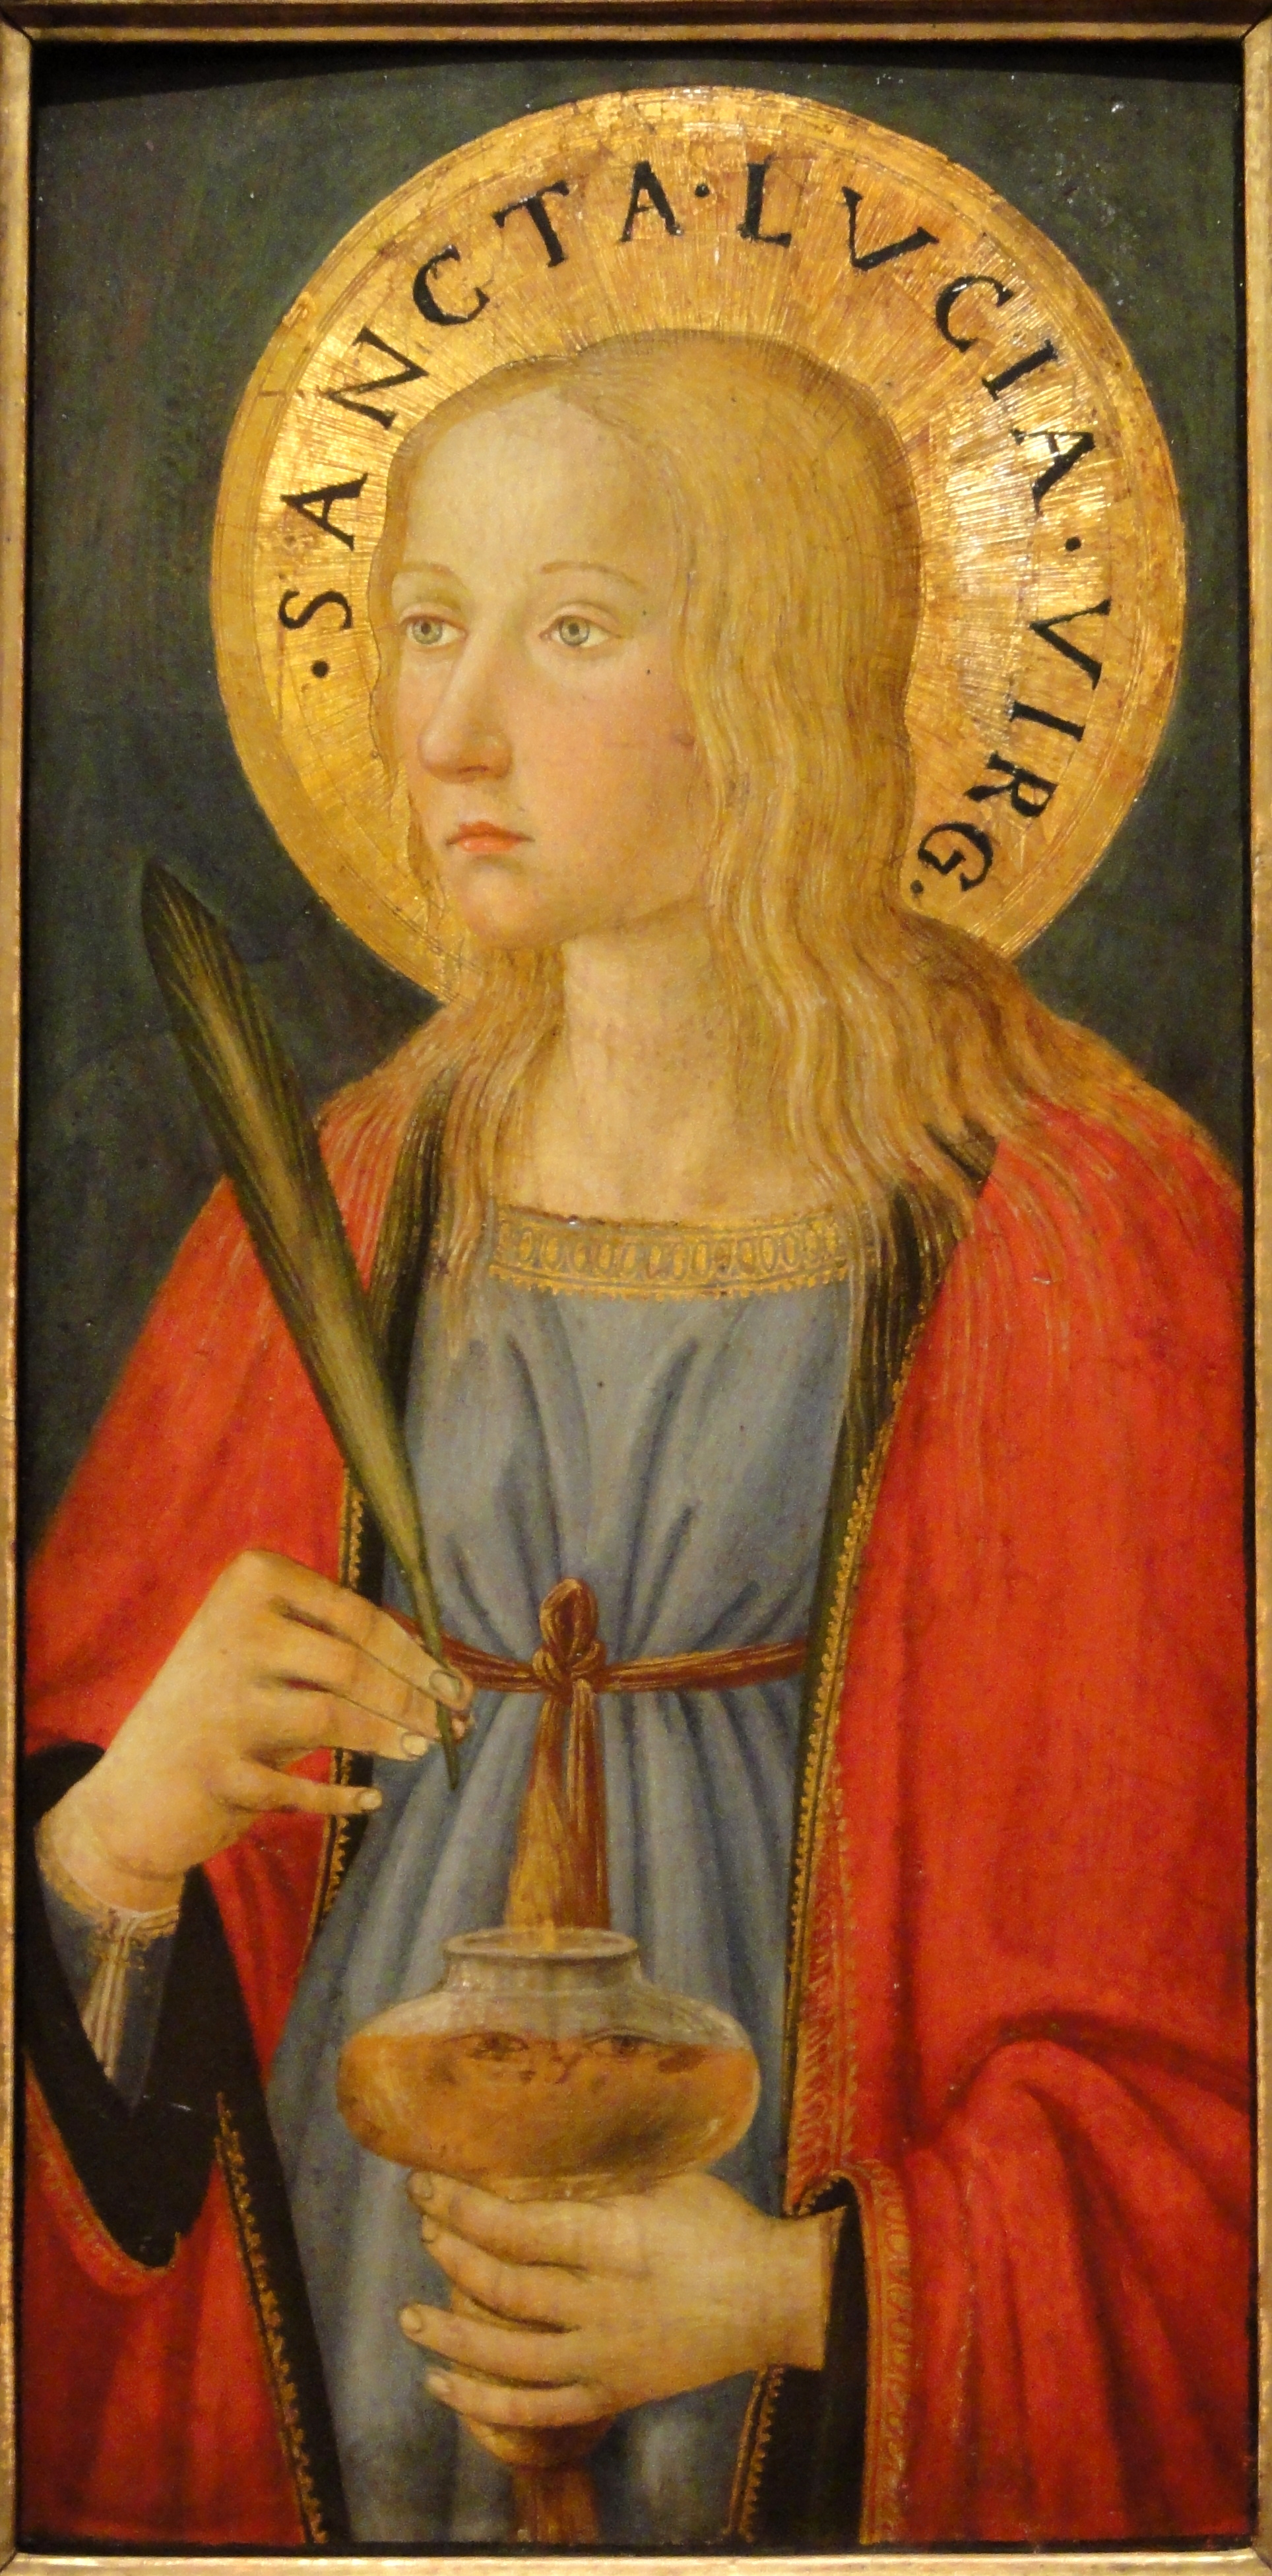 Saint Lucy by Cosimo Rosselli, Florence, c. 1470, tempera